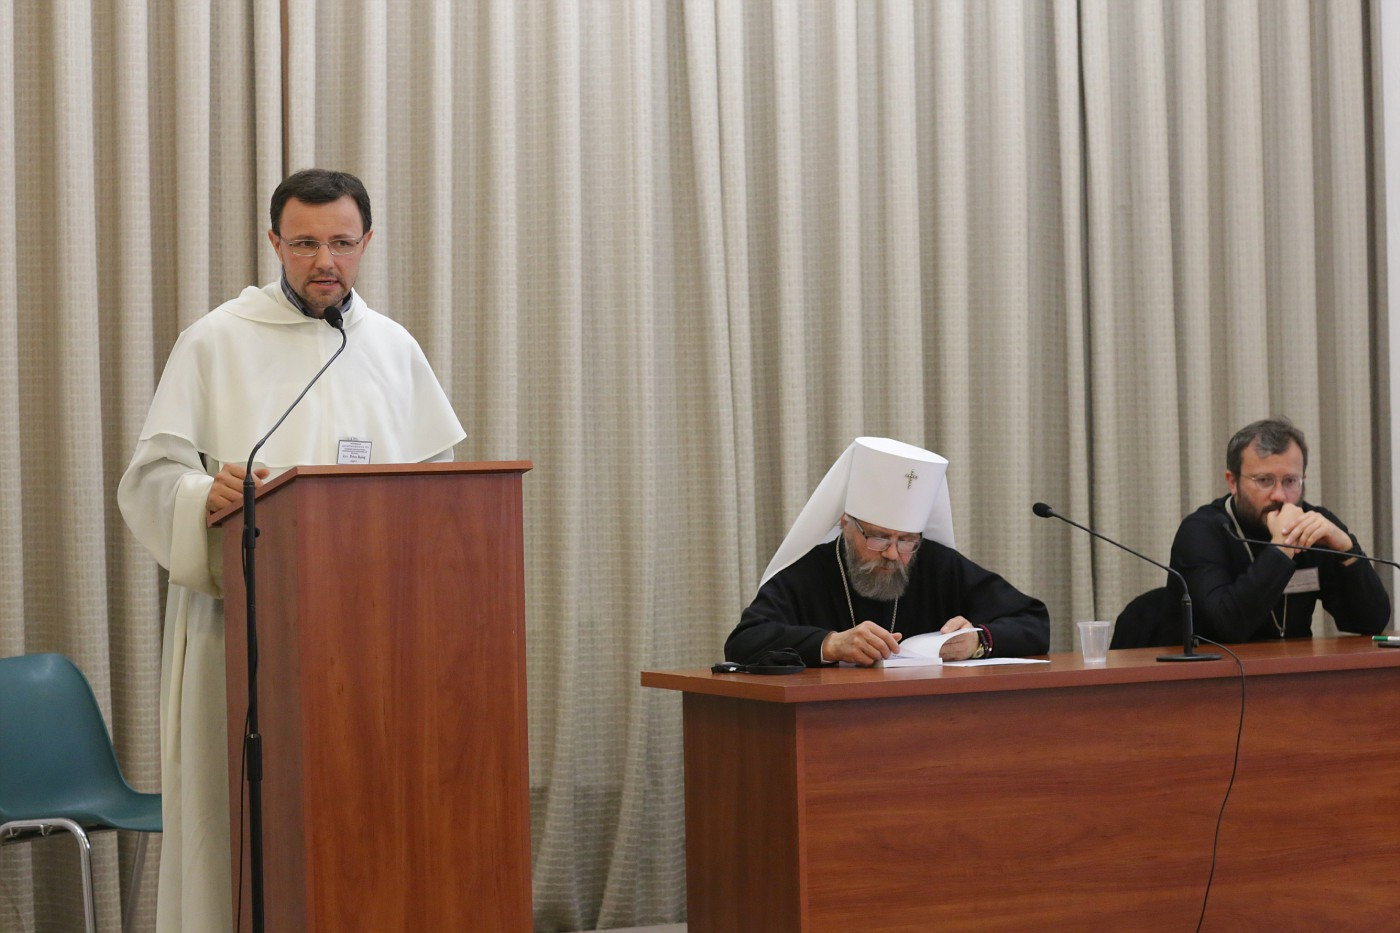 Presentation by Rev. Petro Balog OP (Kyiv).  Session moderated by Metropolitan Augustine (Markevych) and Rev. Cyrill (Hovorun)